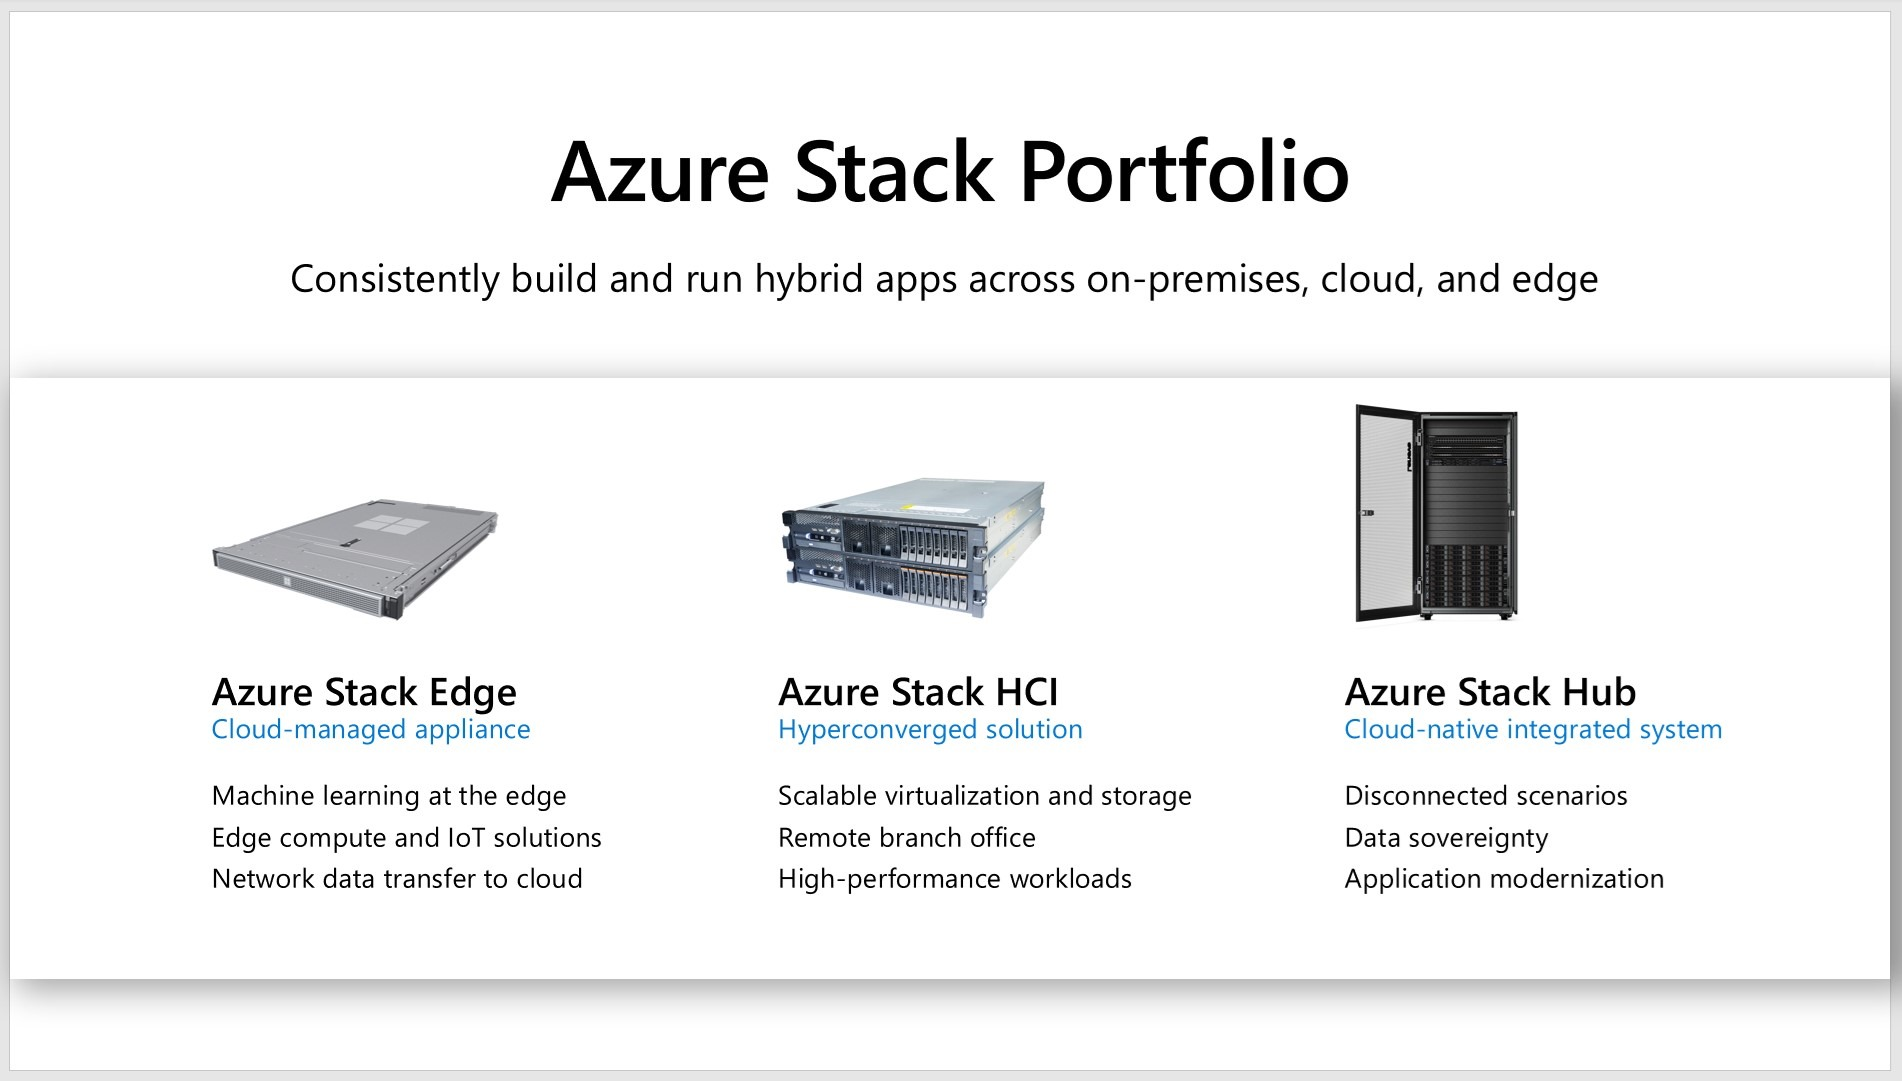 Azure Stack portfolio including of Azure Stack Edge, Azure Stack HCI, and Azure Stack Hub